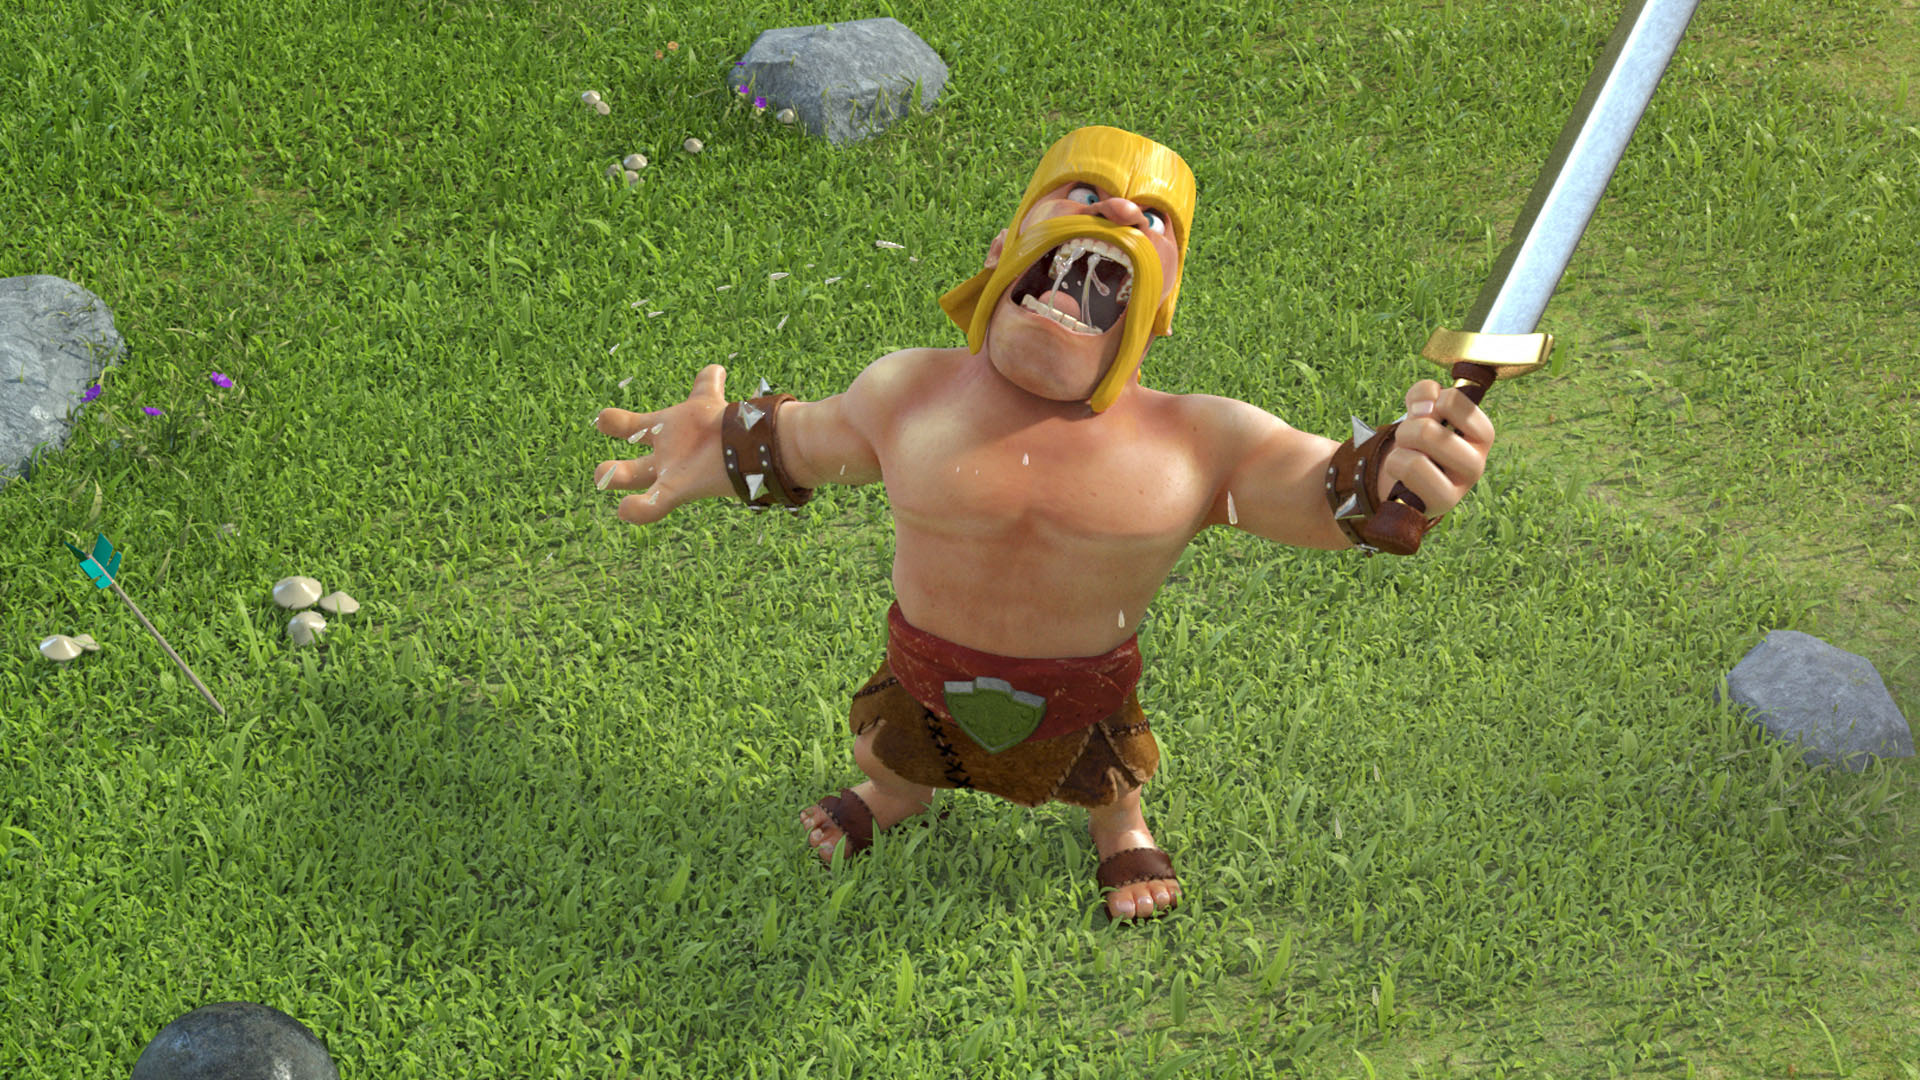 Clash of Clans   Barbarian yelling   1920x1080   Full HD 169 1920x1080